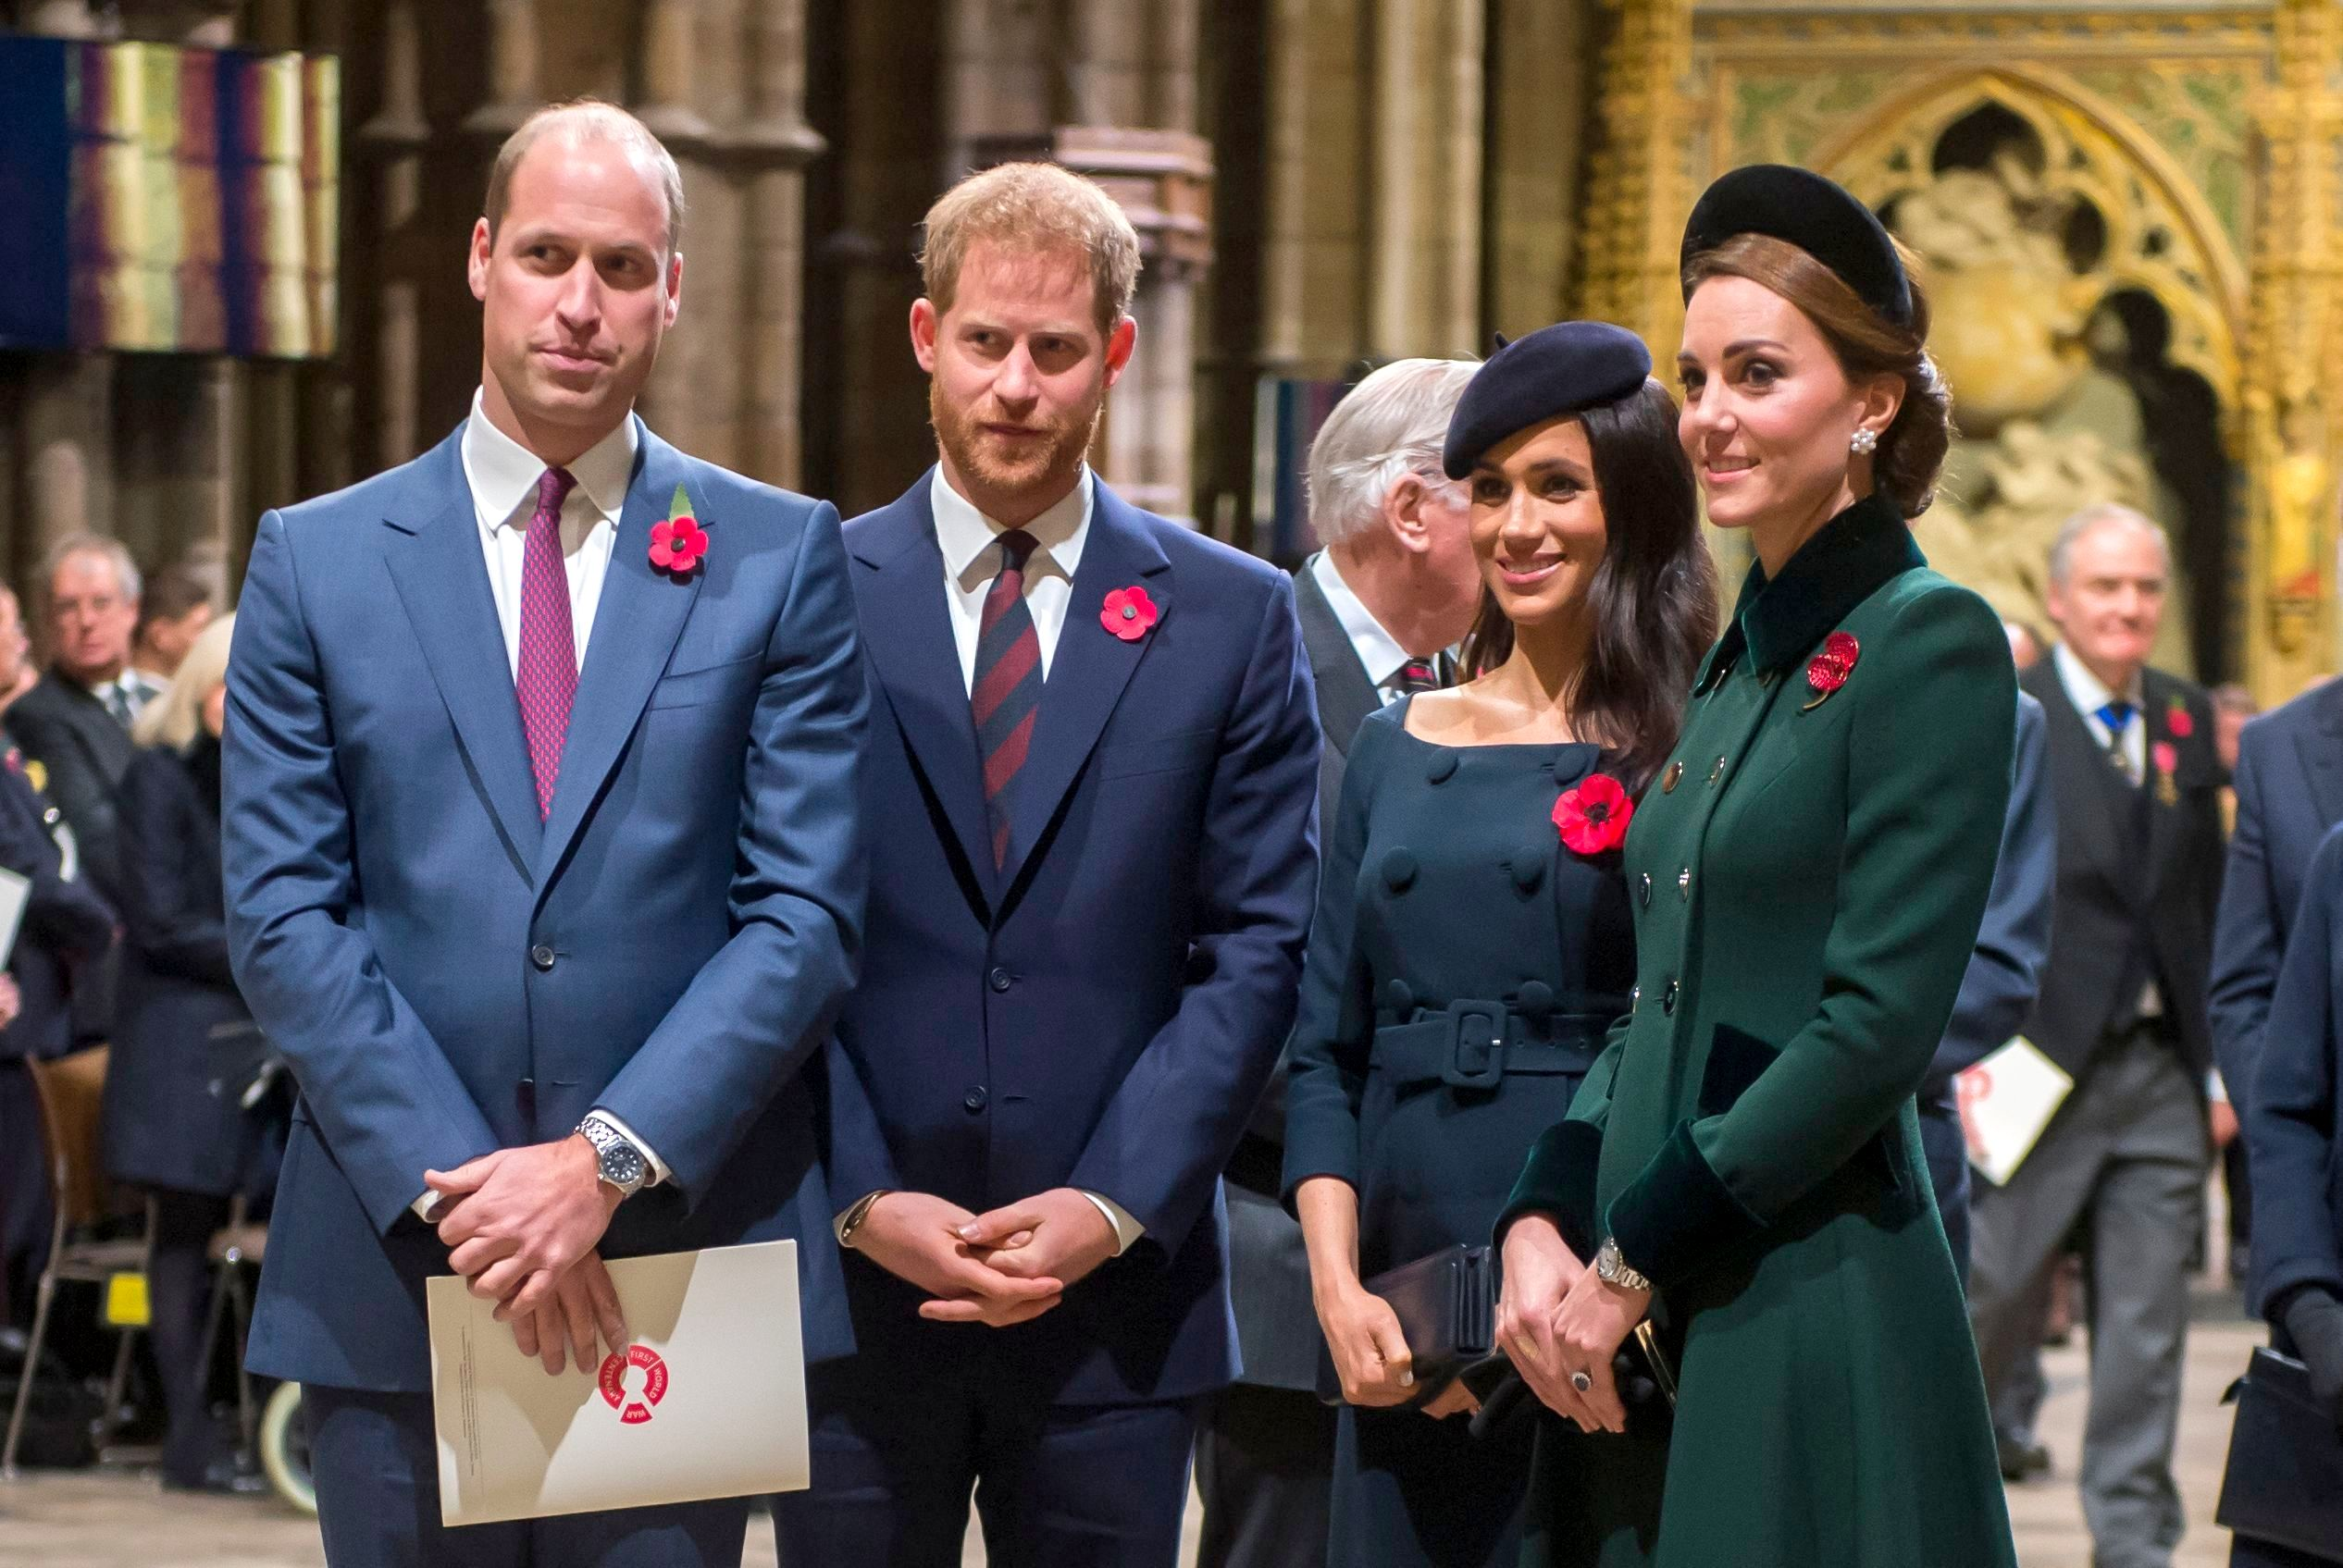 Prince William Is 'Devastated' After Harry, Meghan's Claims About Wife Kate